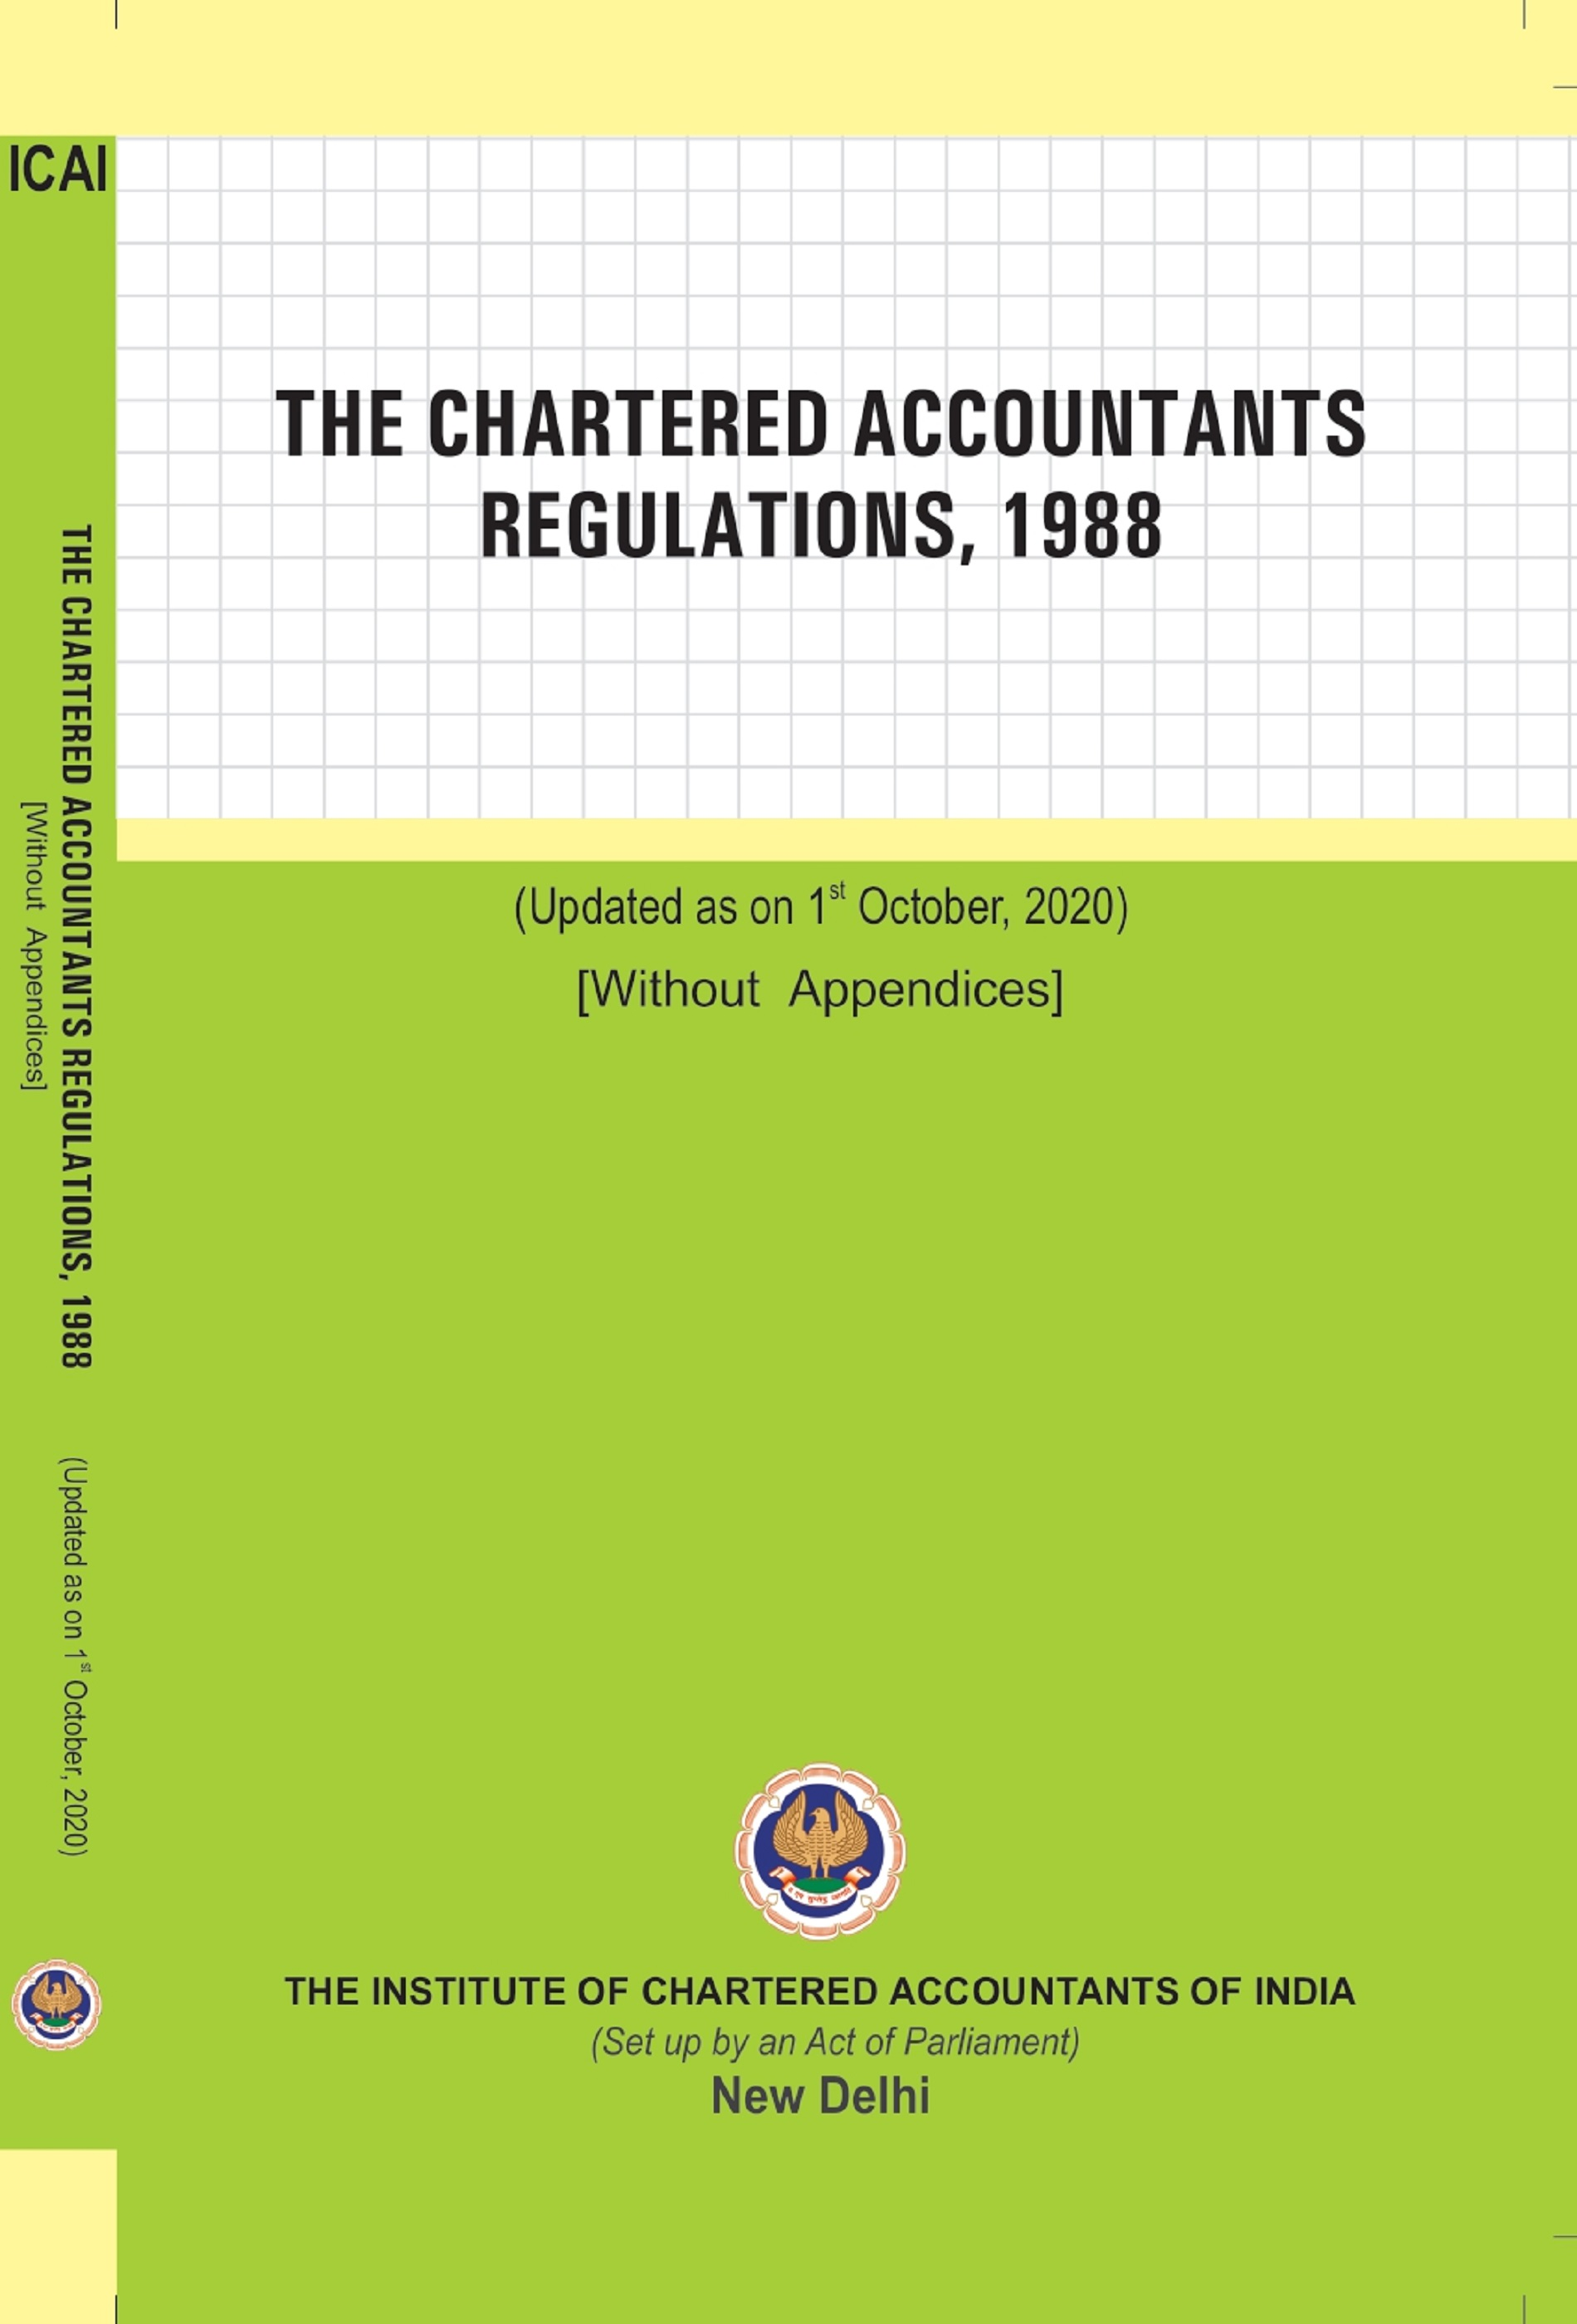 The Chartered Accountants Regulations, 1988 (Updated as on 1st October, 2020)